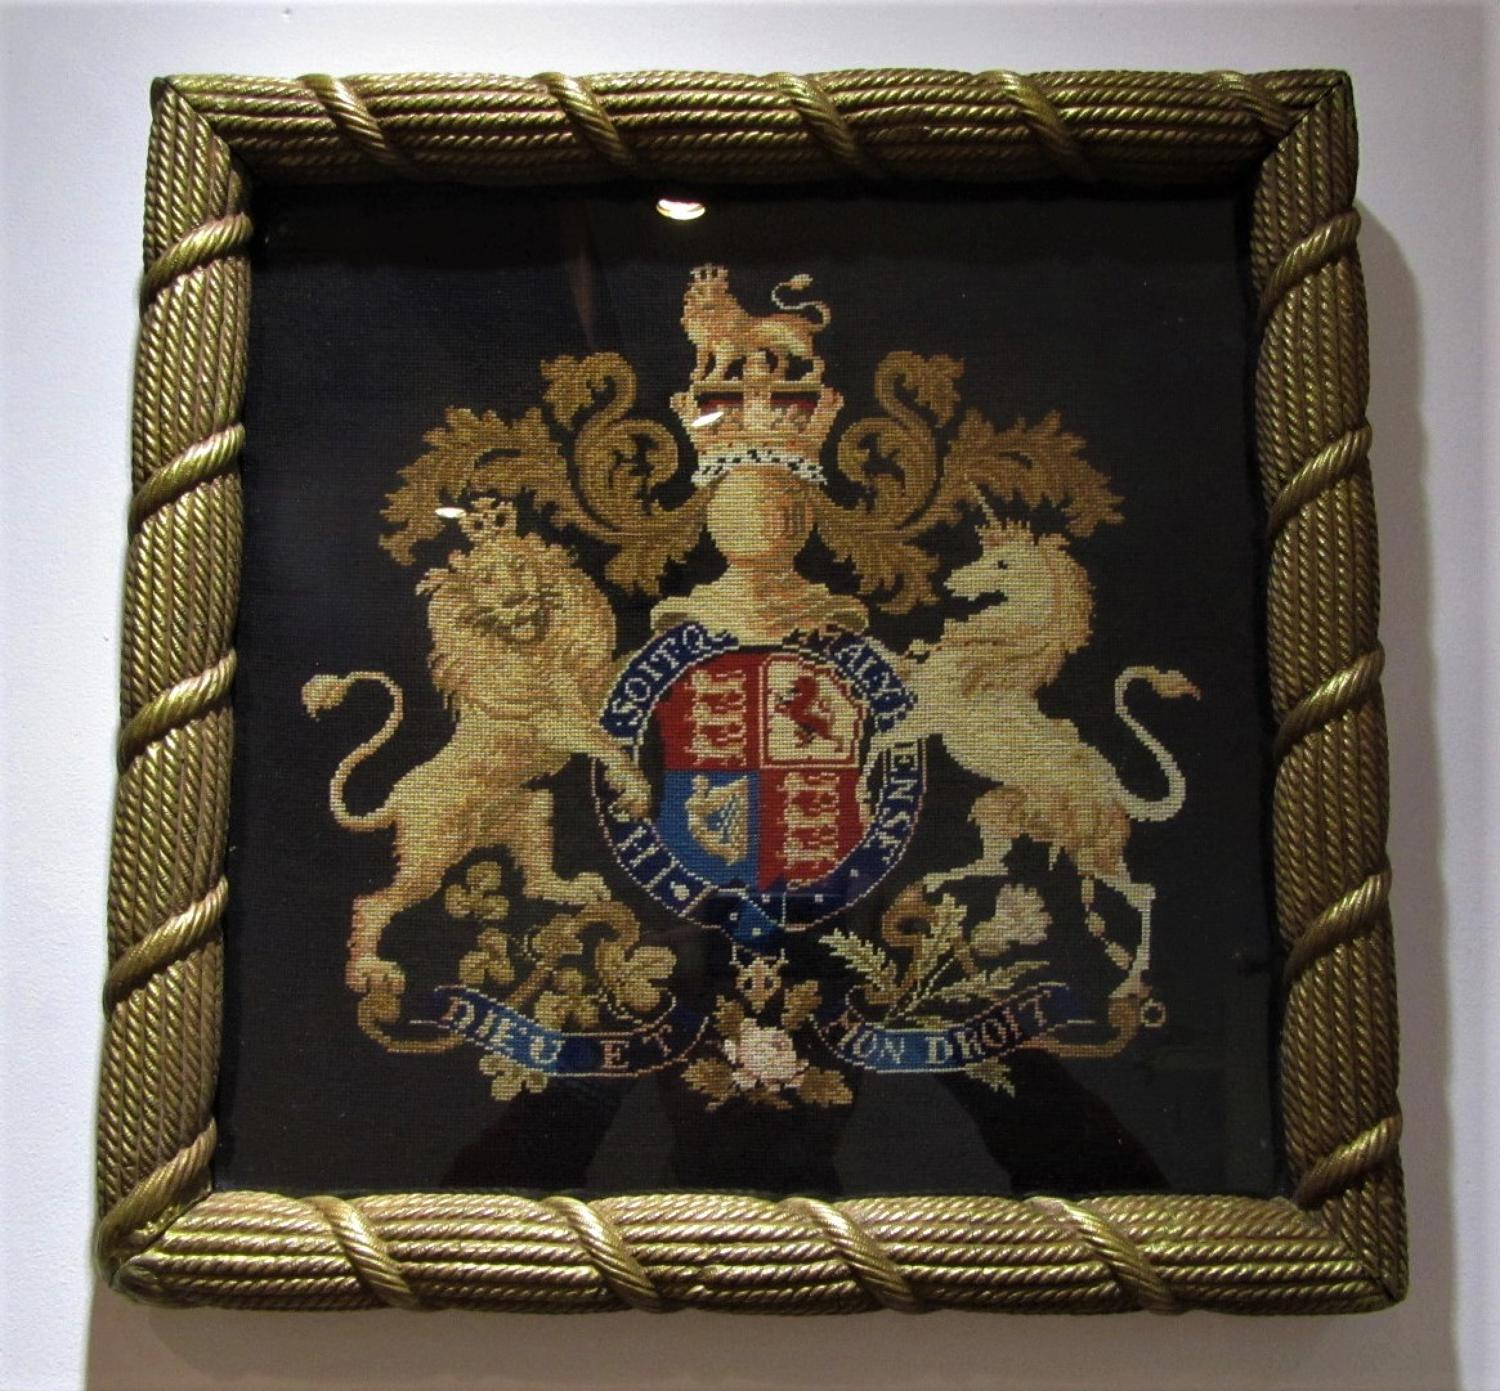 A needle point royal coat of arms